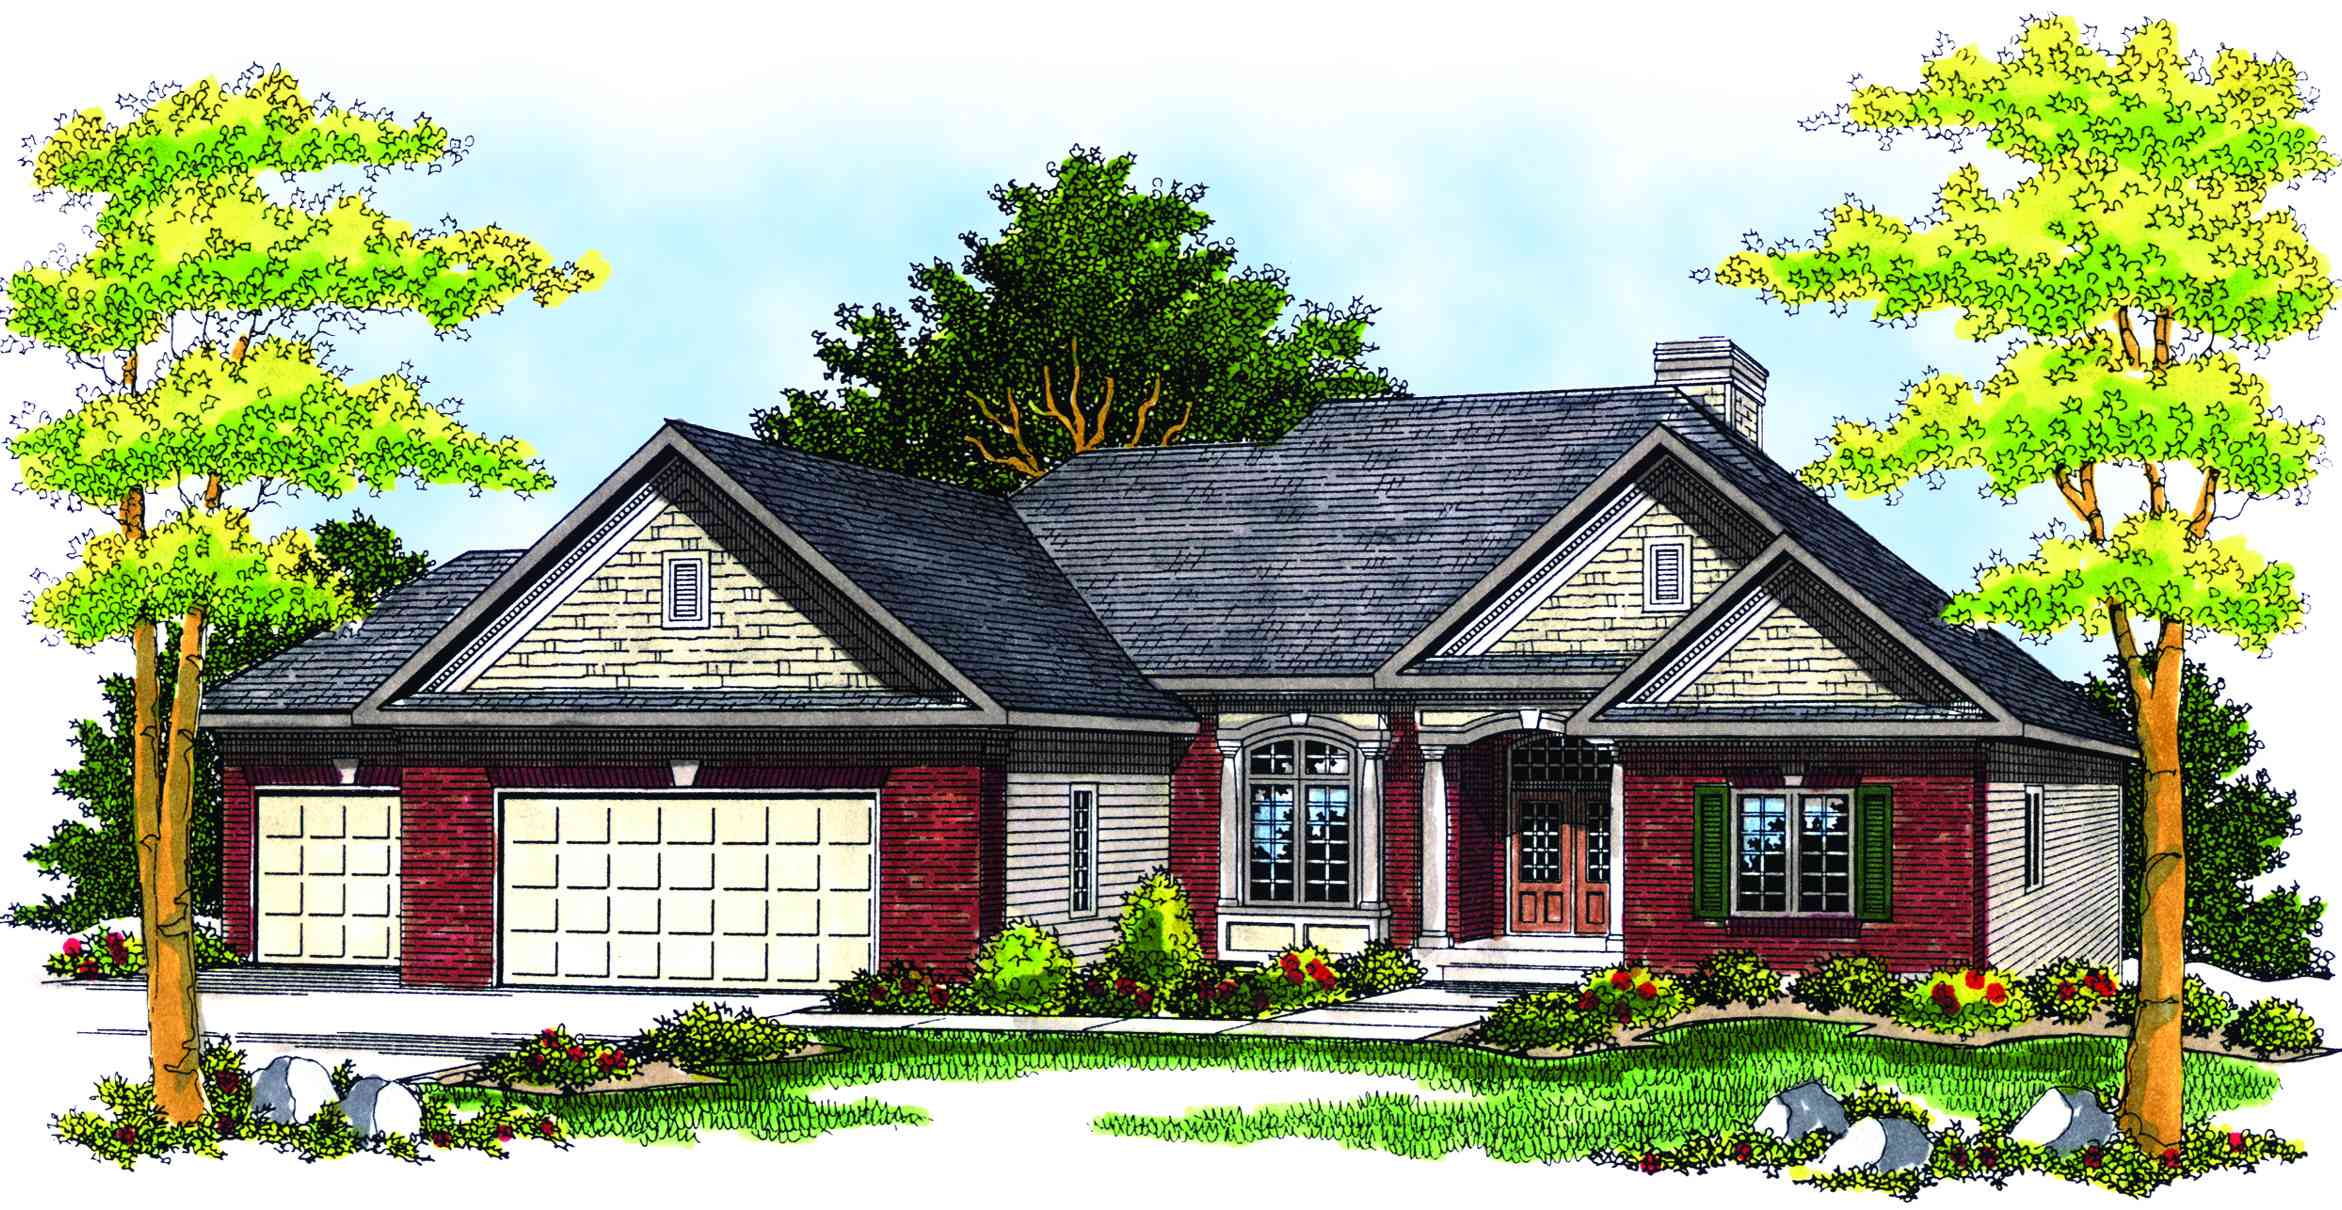 Traditional ranch house plan 89156ah architectural for Traditional ranch house